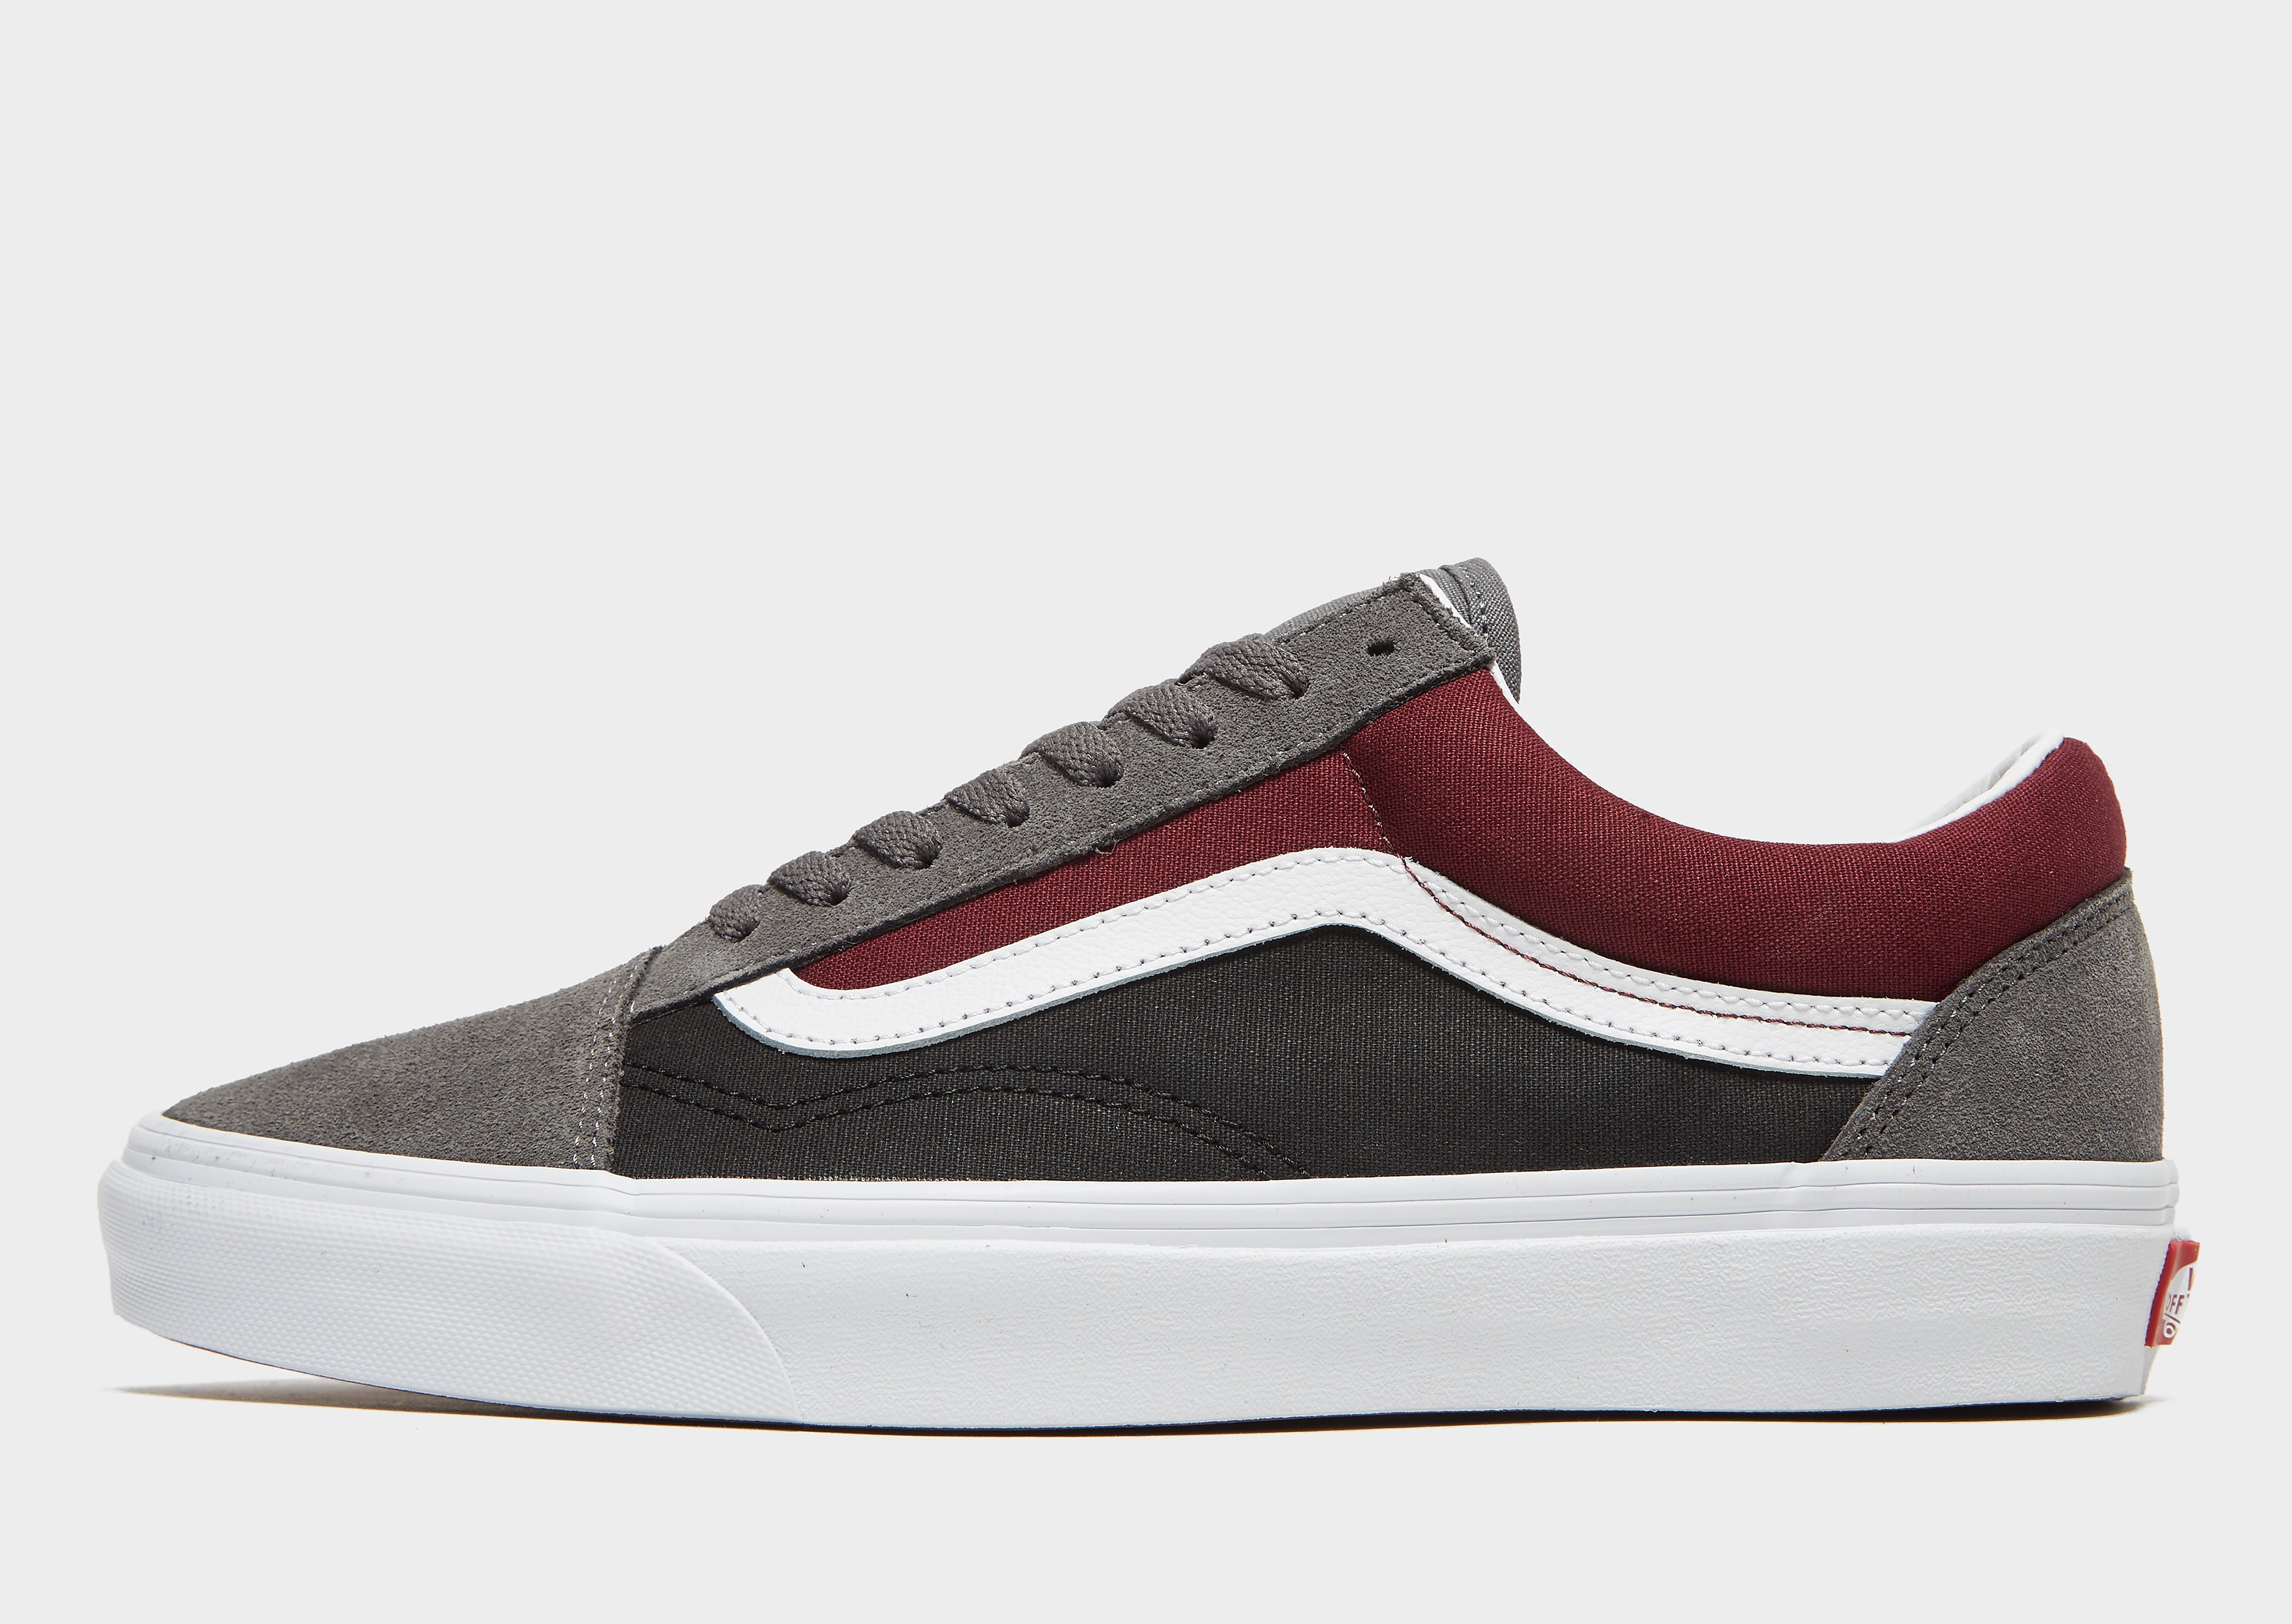 Vans Old Skool Herren - Only at JD - Grau - Mens, Grau